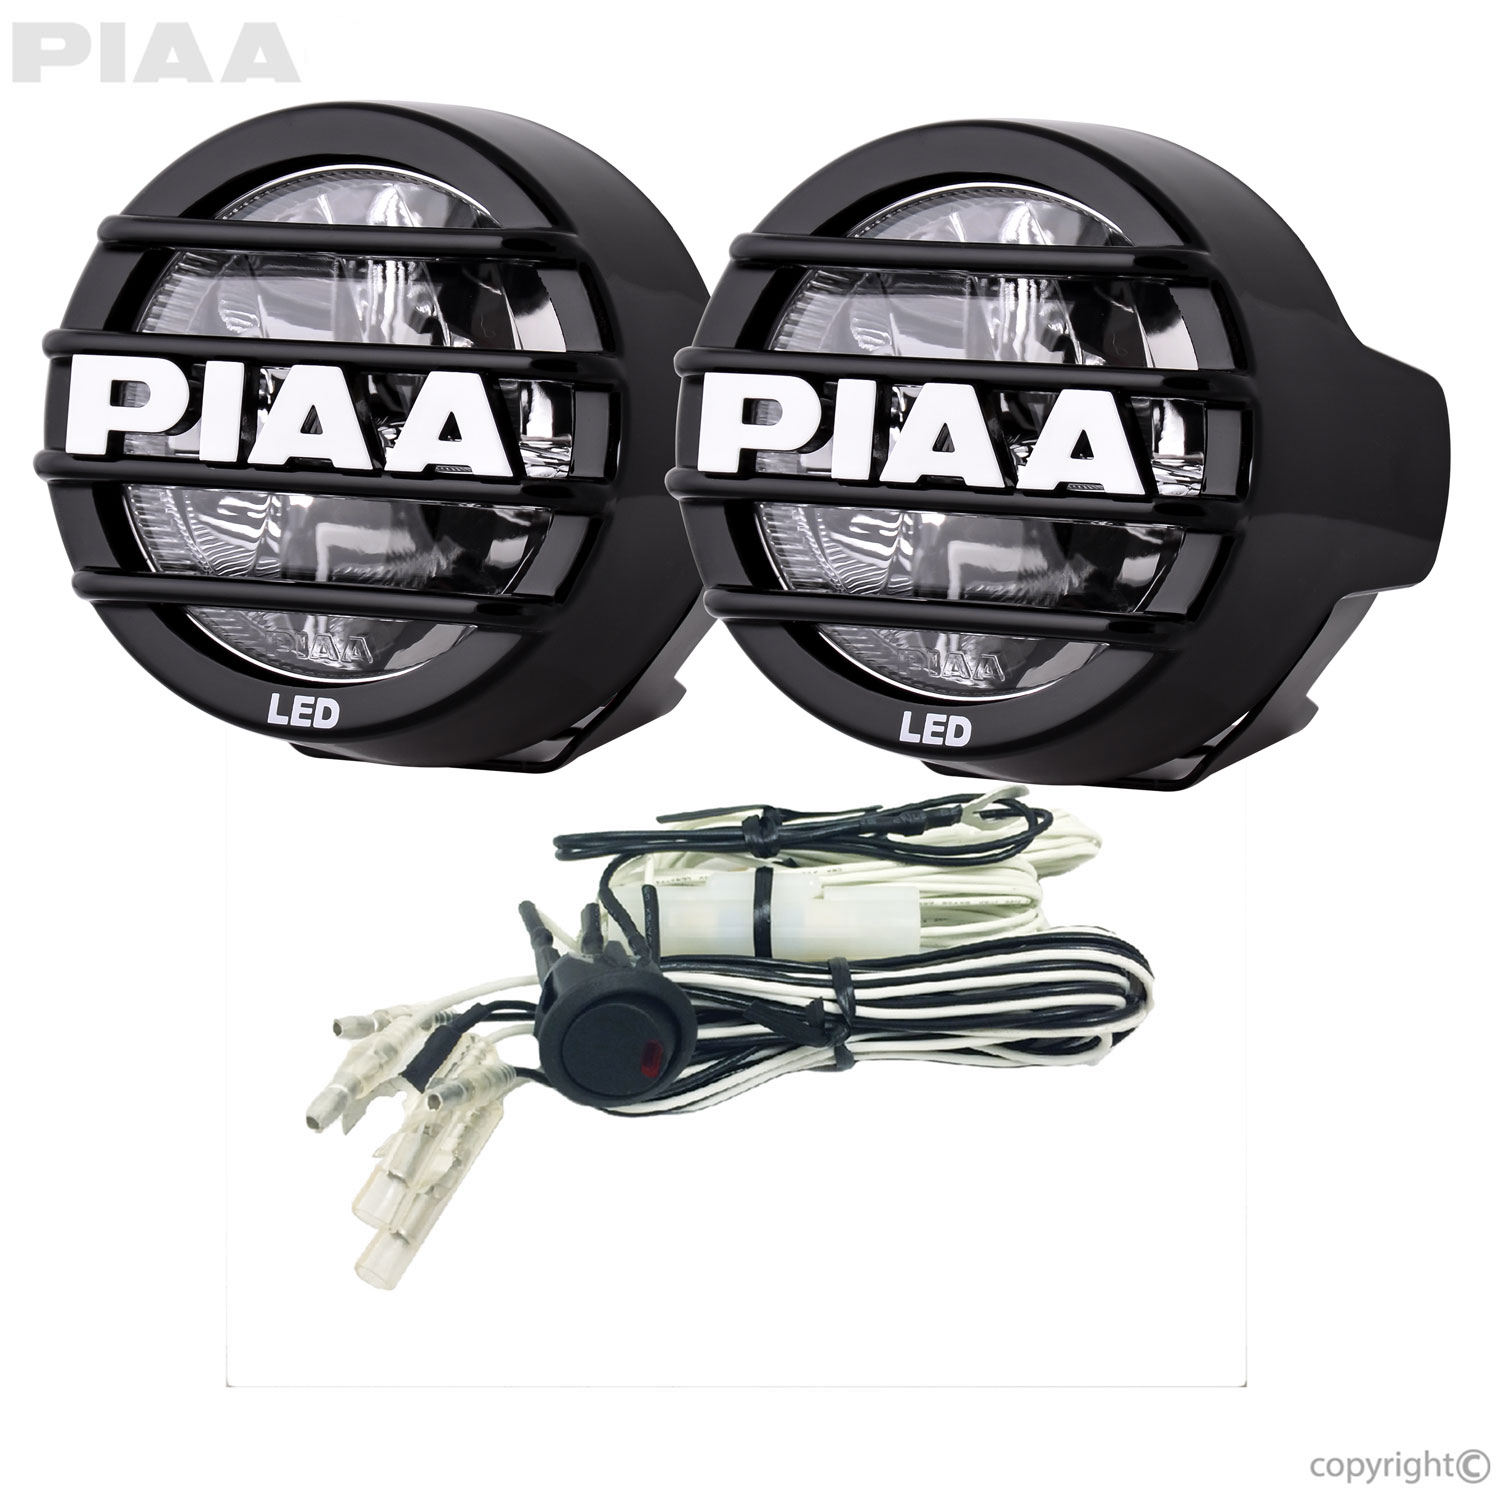 piaa 05372 530 led contents hr?bw=1000&w=1000&bh=1000&h=1000 piaa piaa lp530 led white driving beam kit 5372 High Intensity LED Driving Lights at edmiracle.co